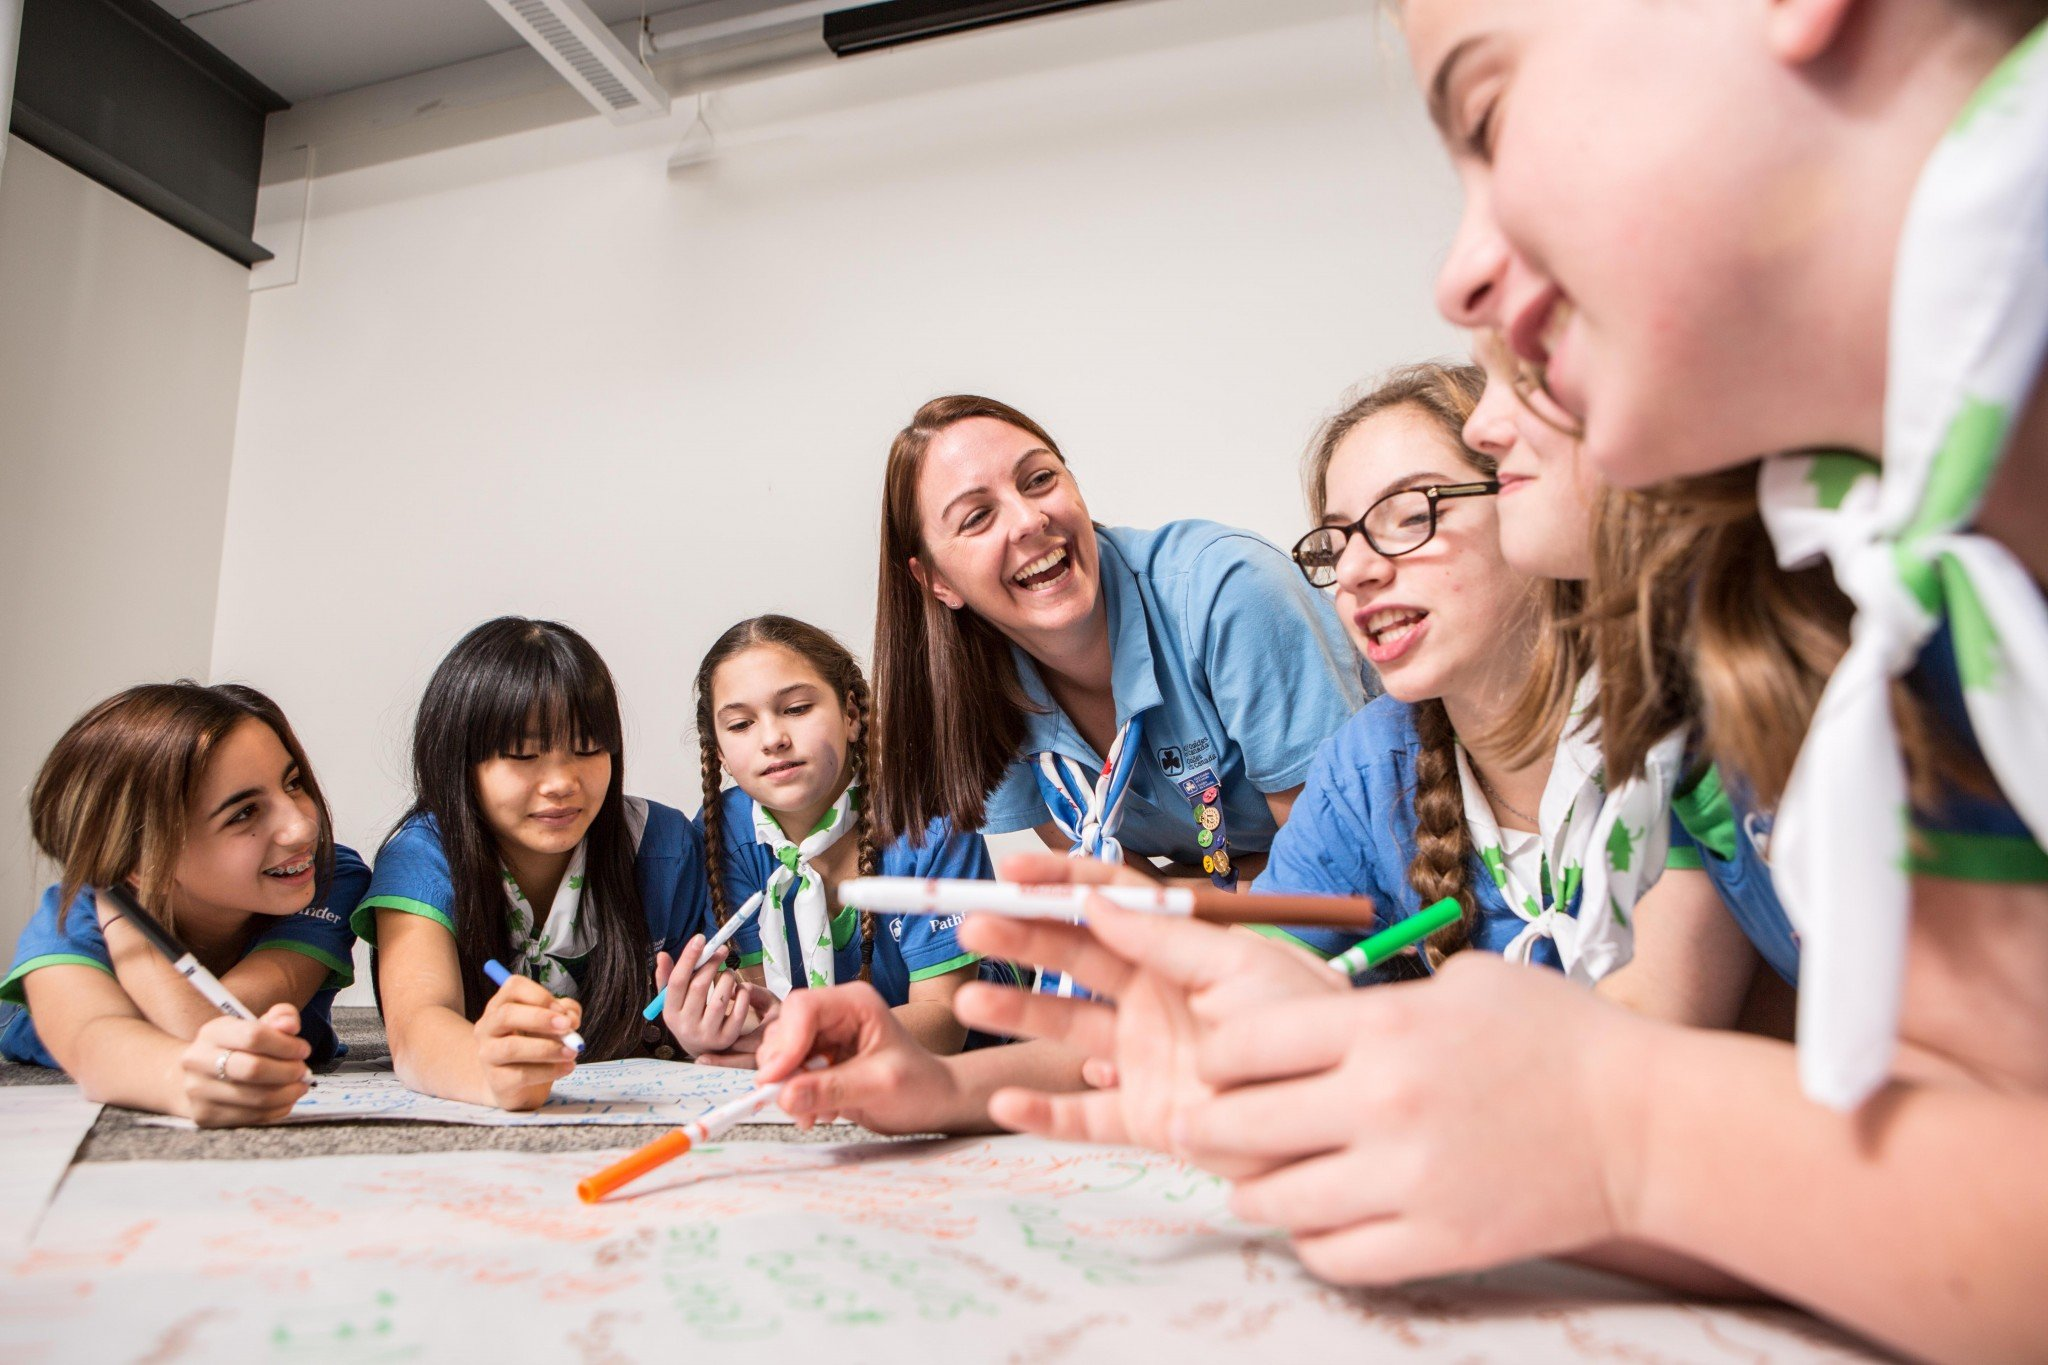 A volunteer works with a group of Pathfinders (girls aged 12-14). (Photo: Girl Guides of Canada)